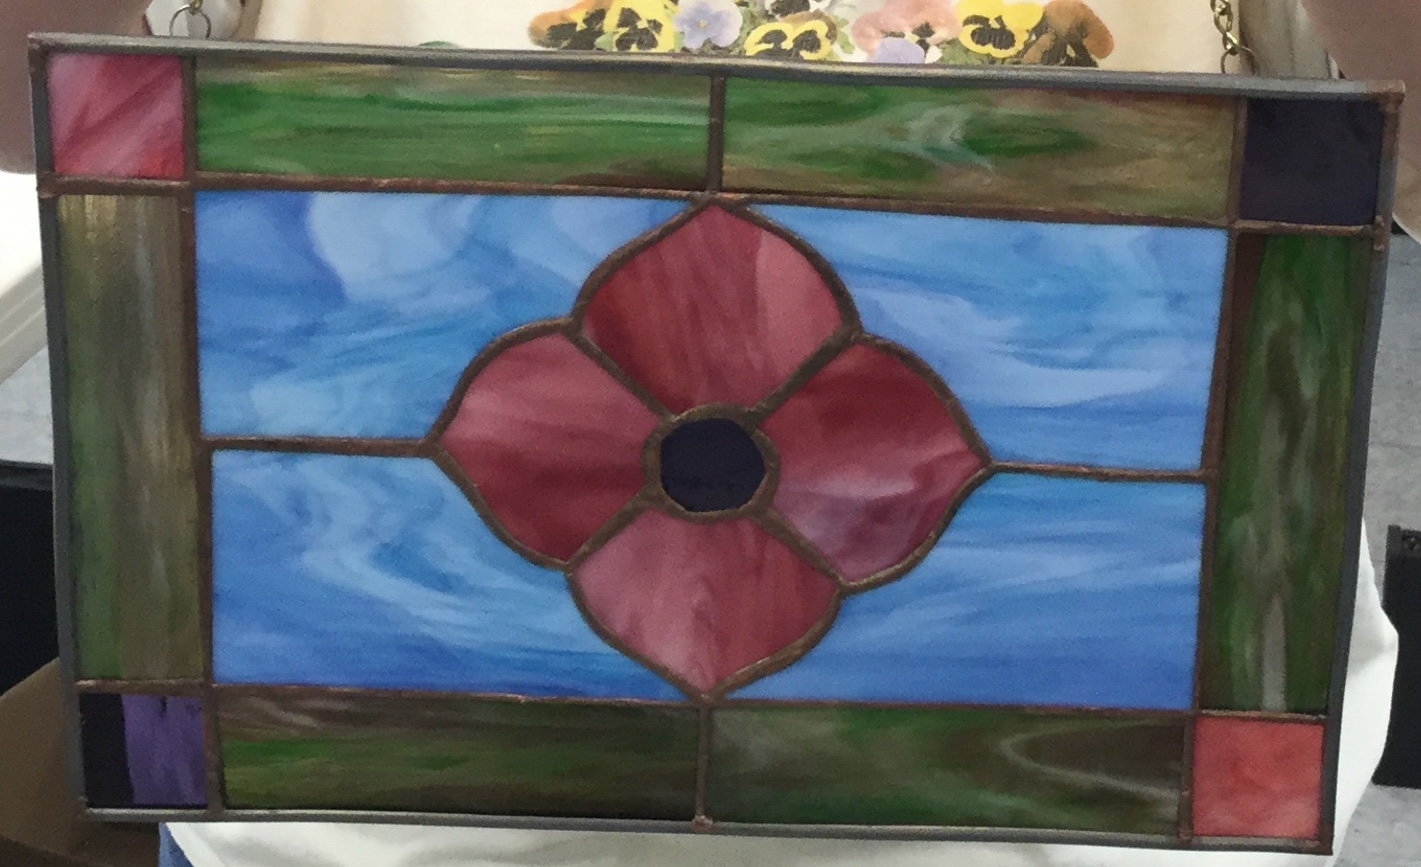 BEGINNING STAINED GLASS CLASS - This five week class will teach you how to build a stained glass panel using the copper foil method. Each student will chose from a variety of selected patterns. You will learn how to prepare your pattern, cut glass, foil and solder. Your piece will end up being framed in lead came. Either black or copper patina will be applied before doing the final cleaning. Class will be held Wednesday evenings from 6:30-9:00 at the Lake City Area Arts Center starting Sept 25 - Oct 30 (no class Oct 2nd).Class limit 10Class fee: $75Supply fee: $30.00 (includes all supplies you need for your project, except glass and tools).Tools needed:Glass cutter100 watt soldering ironGrozing pliersIf you would like me to get any of these tools for you, let me know at least 2 weeks before the first class. I also have a large selection of glass available for purchase.I will send out pattern choices and more information when you have registered. Please include an email address or phone number.Thank you,Nancy ZimmermannThe Glass Garden708 N. Garden St.Lake City, MN 55041651-345-4095Email at: njzimm1@gmail.com